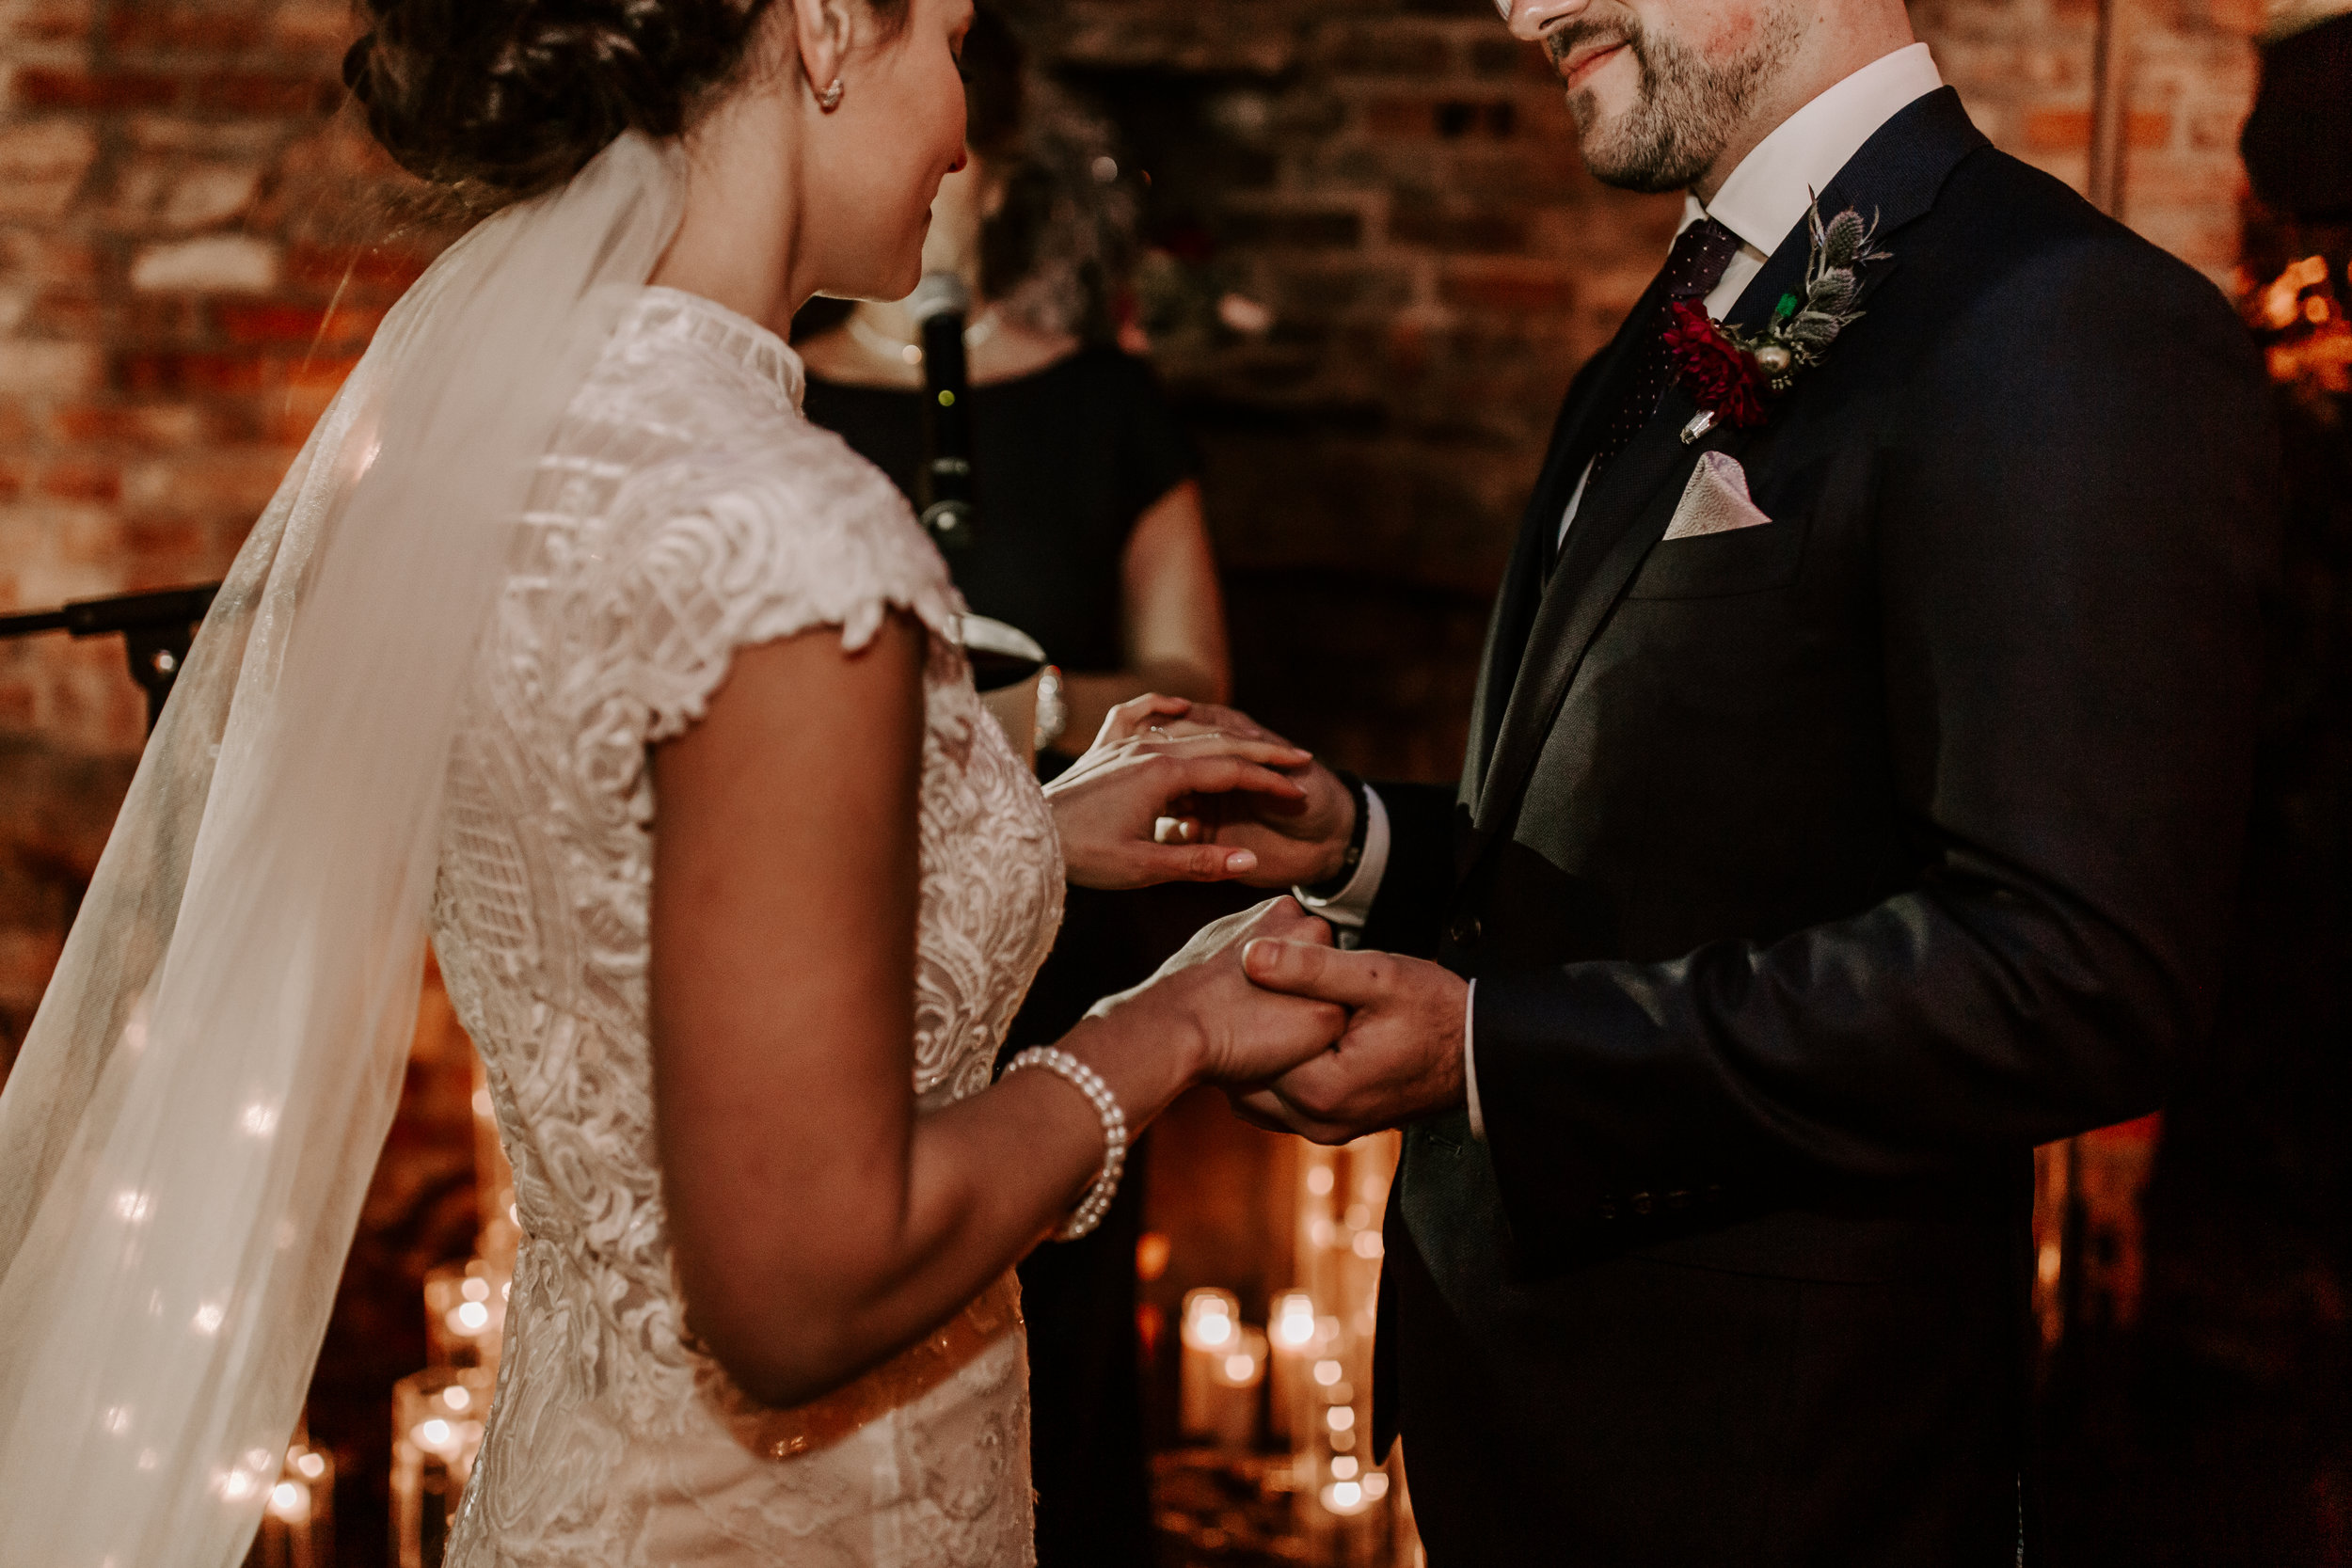 Téo + Ana - Outdoor Candlelit Winter Wedding | Chicago, IL